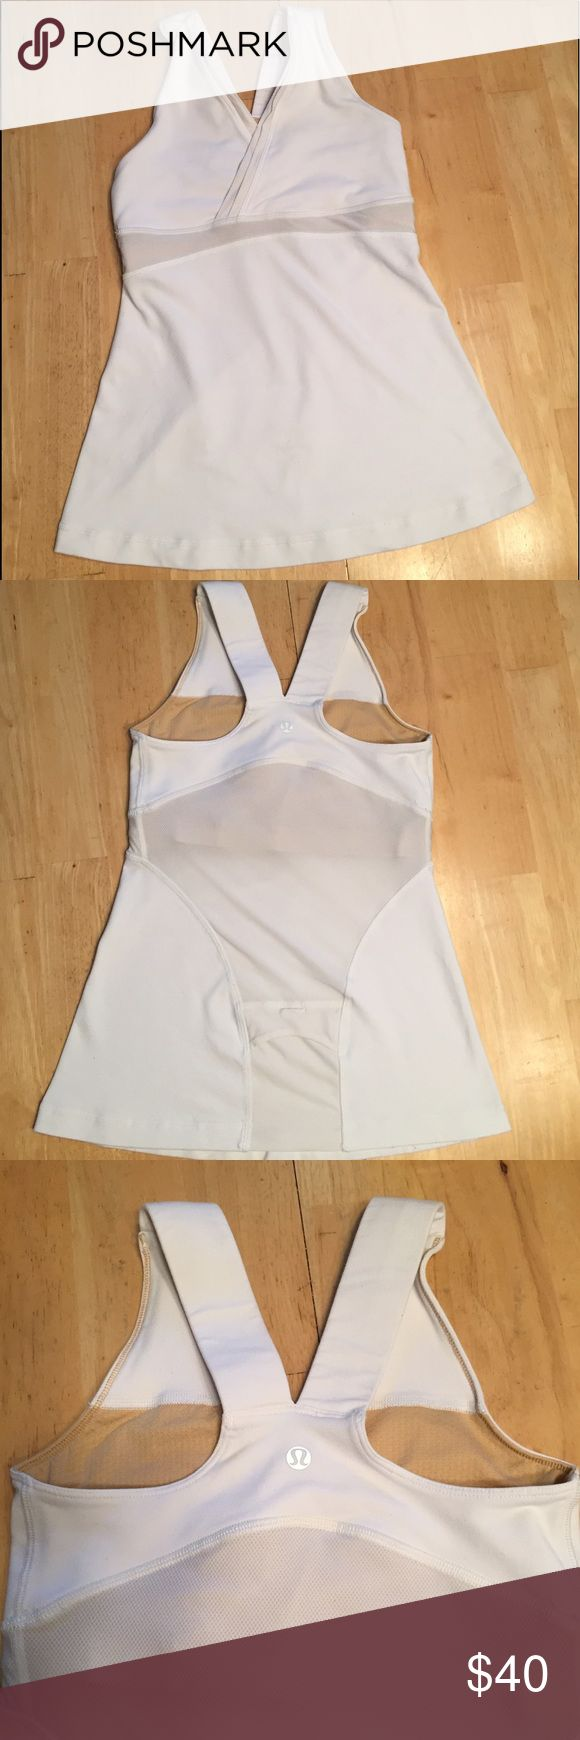 Lululemon Deep V Front White Tank Size 4 THIS TANK IS IN AWESOME CONDITION. It is white and a size 4. Bought at Thrift store specifically to sell. It as a deep v front with a built in bra (bra inserts not included). White mesh is across the bottom of bra and down middle of back as seen above. Has a racerback and has pocket on the bottom of the back as seen above. No stains or holes.Overall a great lulu tank!!! lululemon athletica Tops Tank Tops